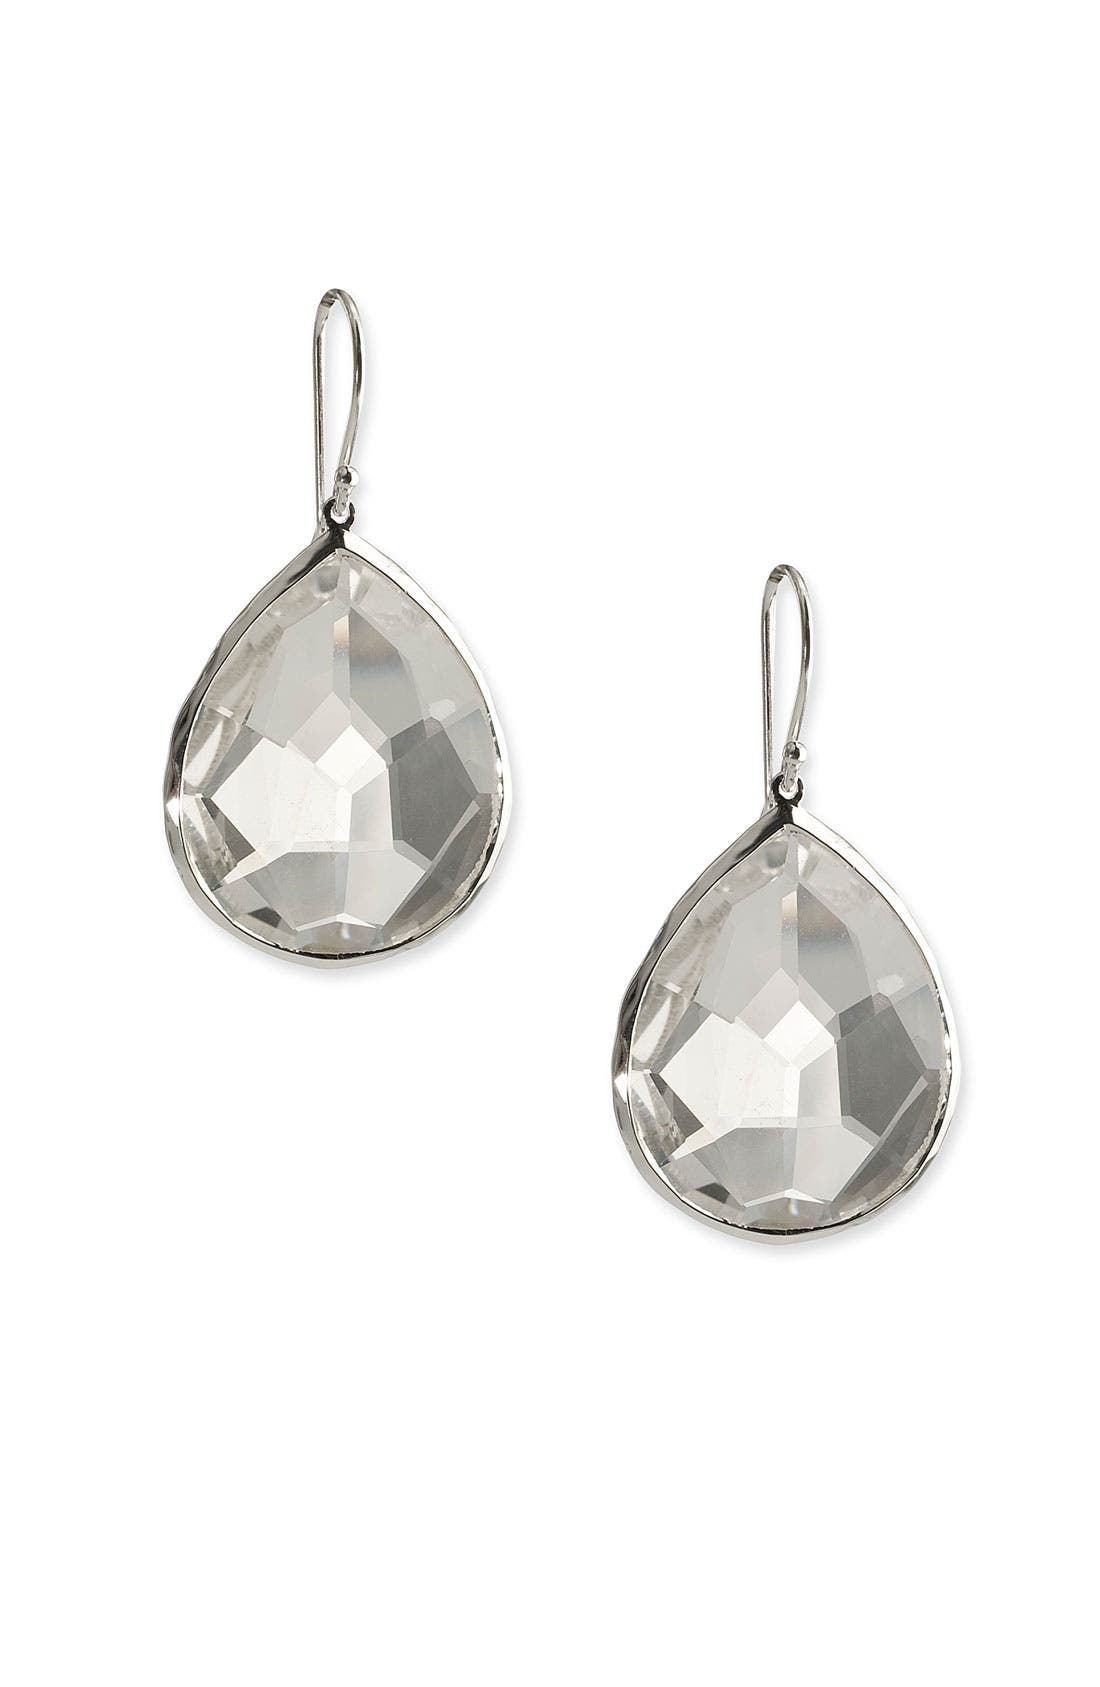 'Rock Candy' Semiprecious Teardrop Earrings,                         Main,                         color, Sterling Silver- Clear Quartz